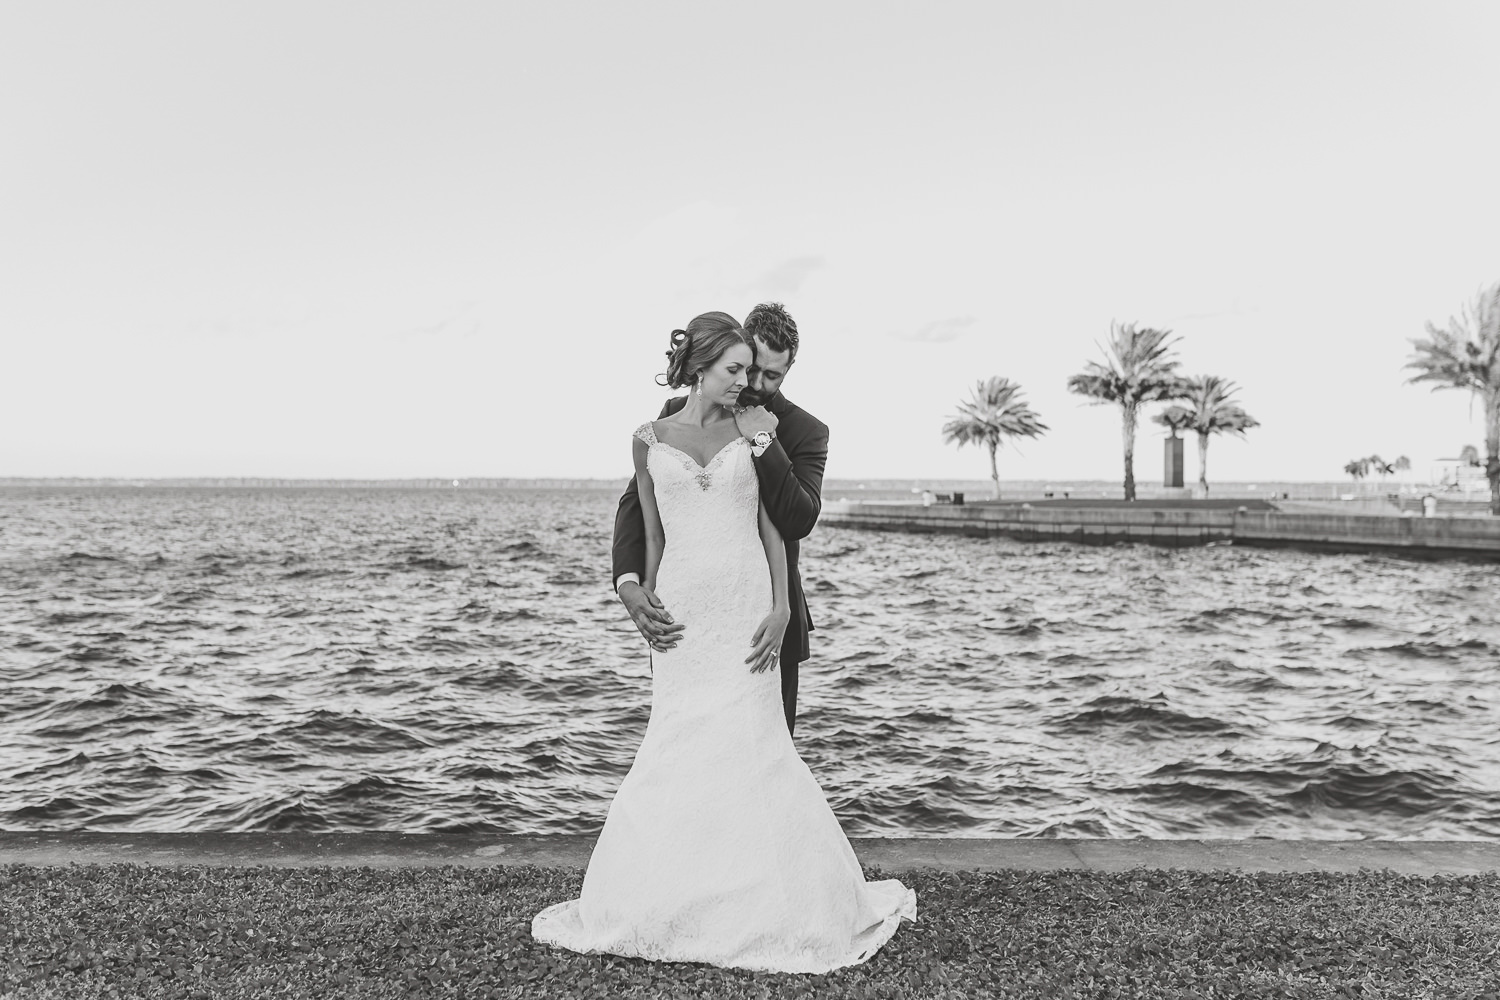 black and white of groom hugging bride from behind with Sanford lake in background